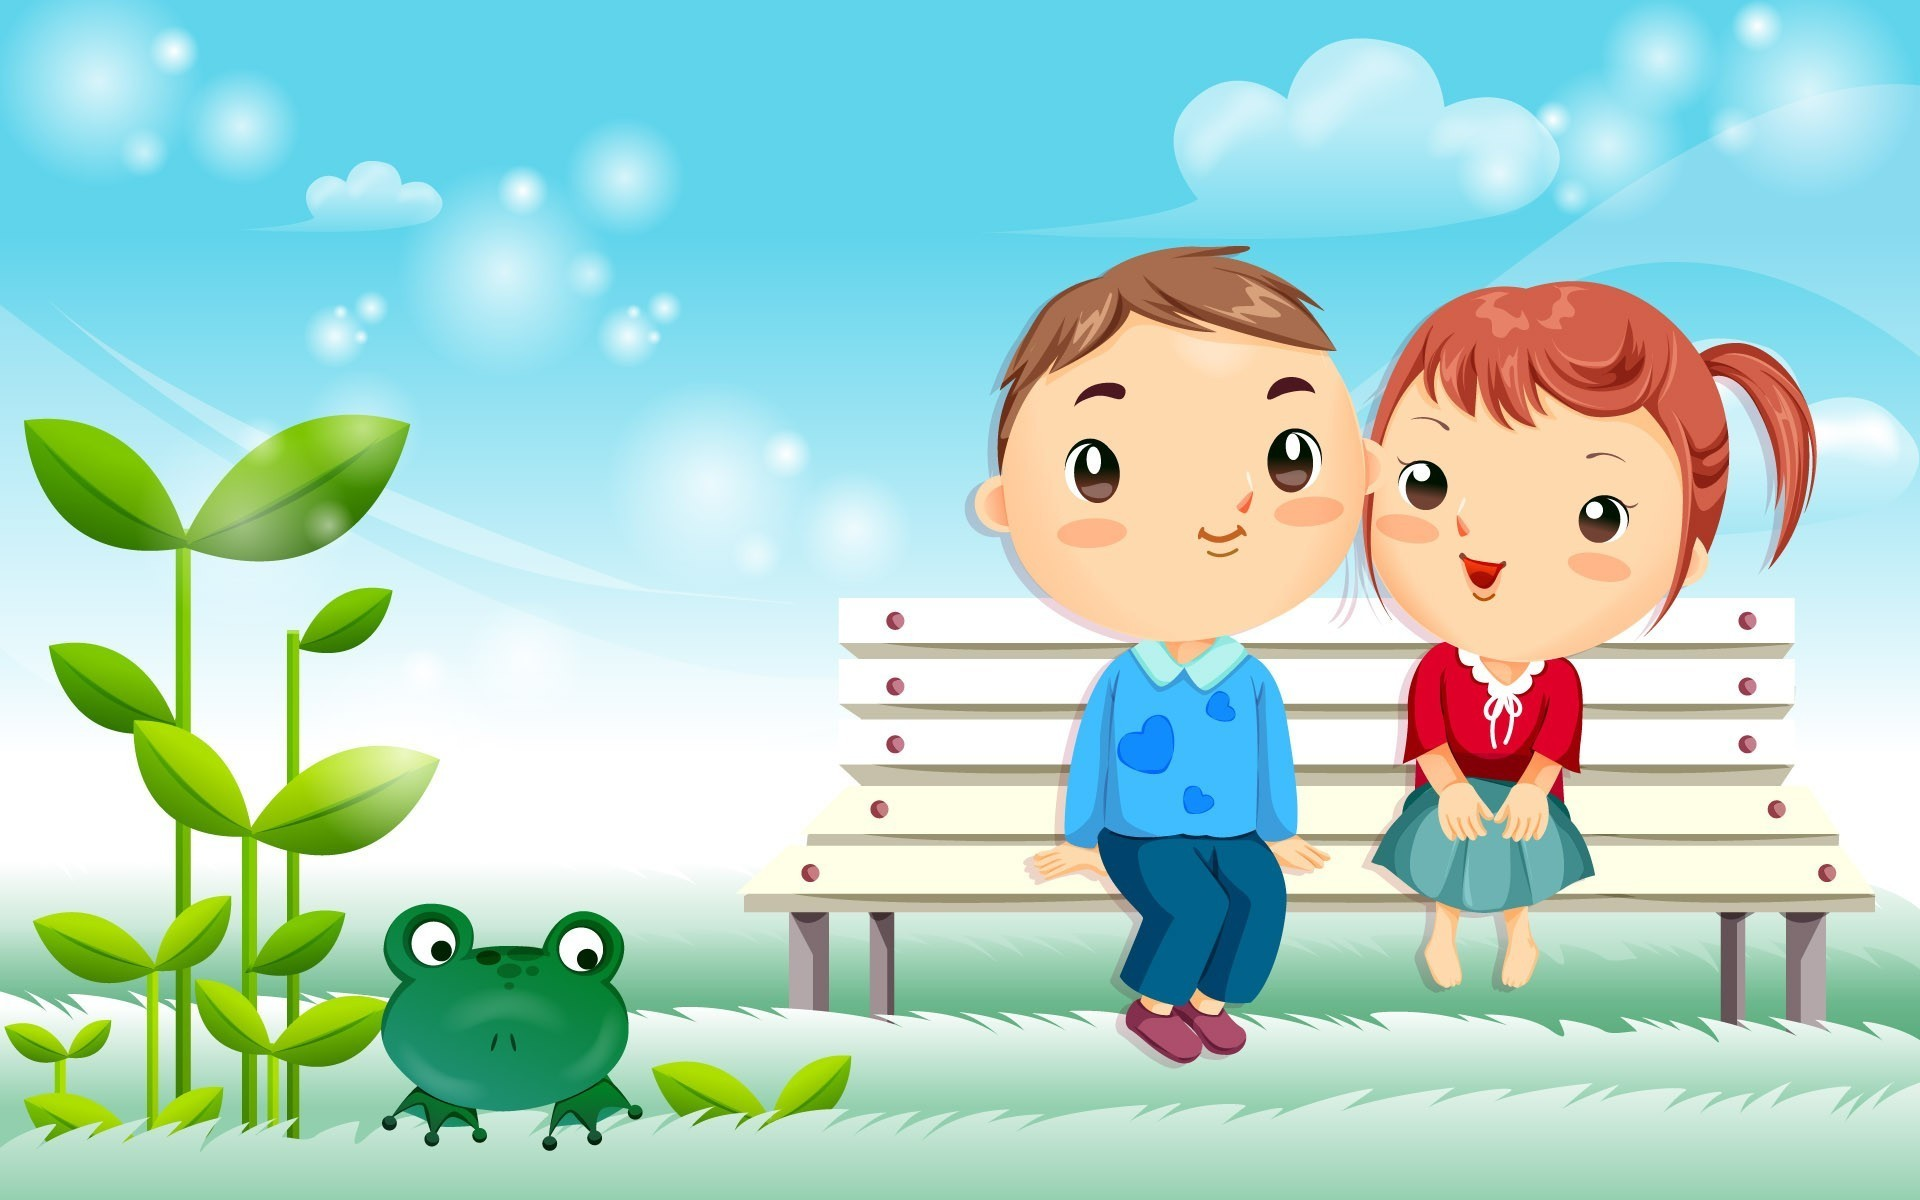 Best Love cartoon Wallpaper : Love cartoon Background - Wallpaper, High Definition, High Quality, Widescreen